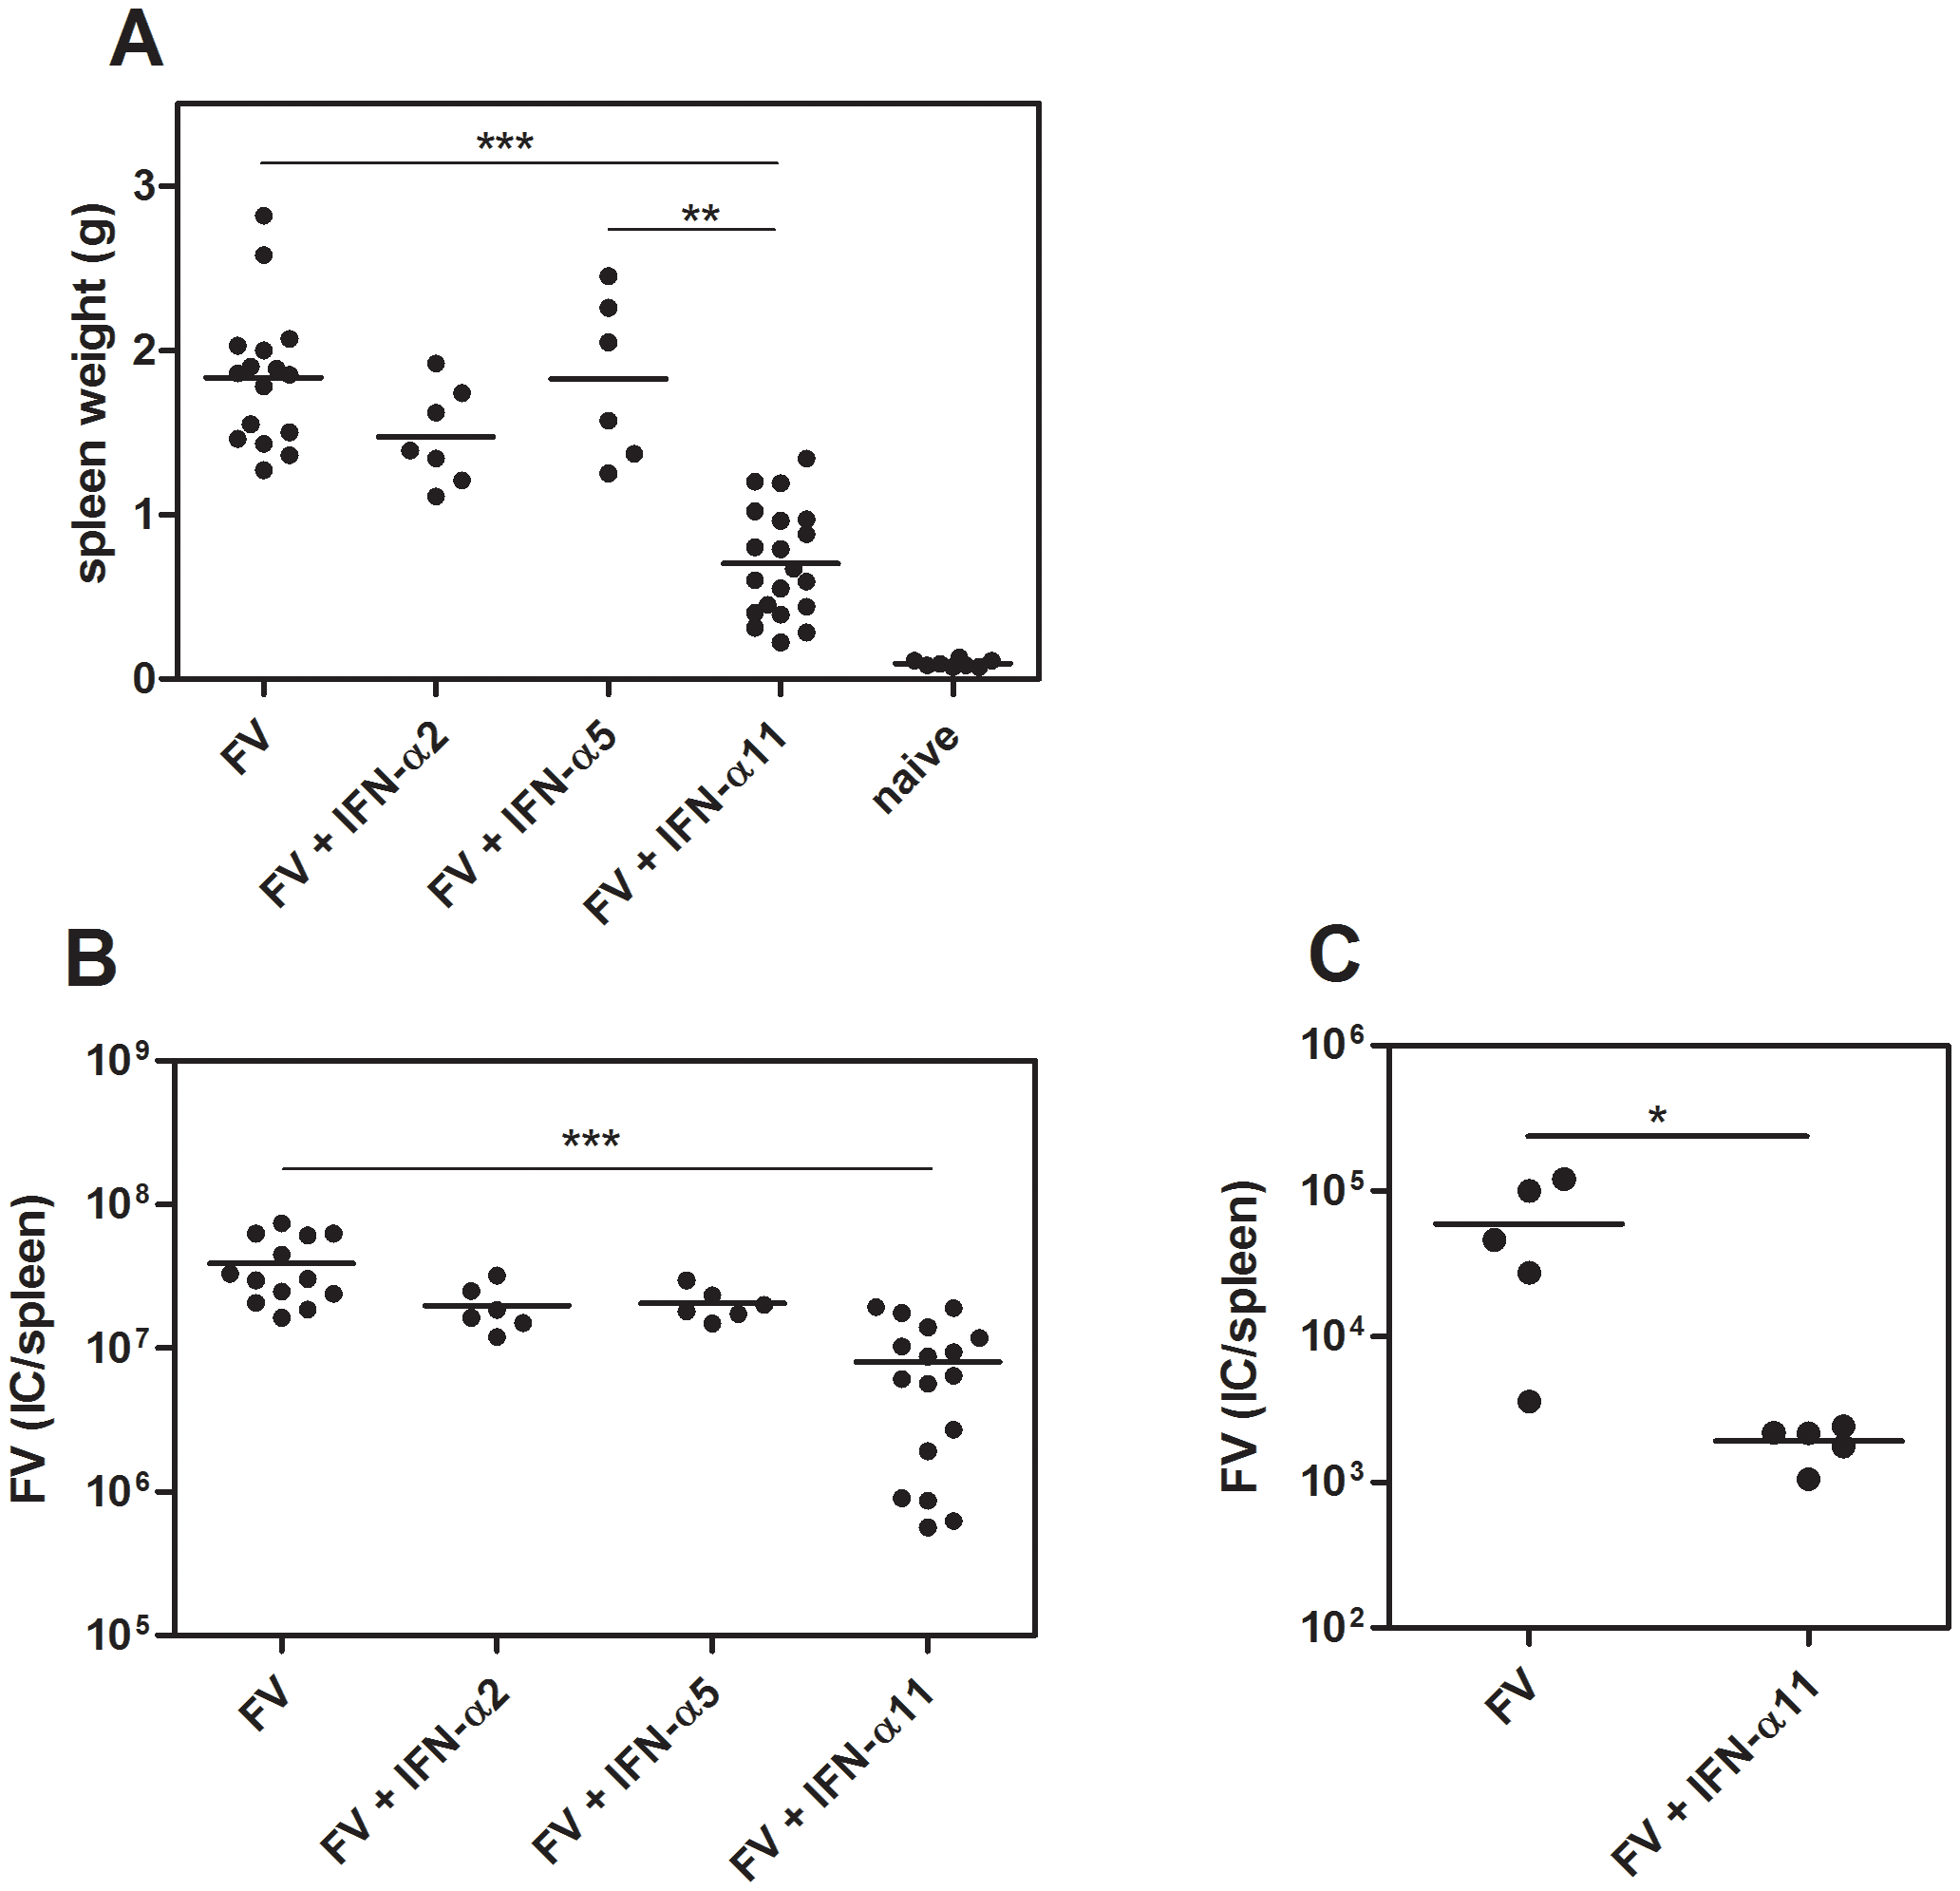 Antiretroviral activity of different IFN-α subtypes <i>in vivo</i>.